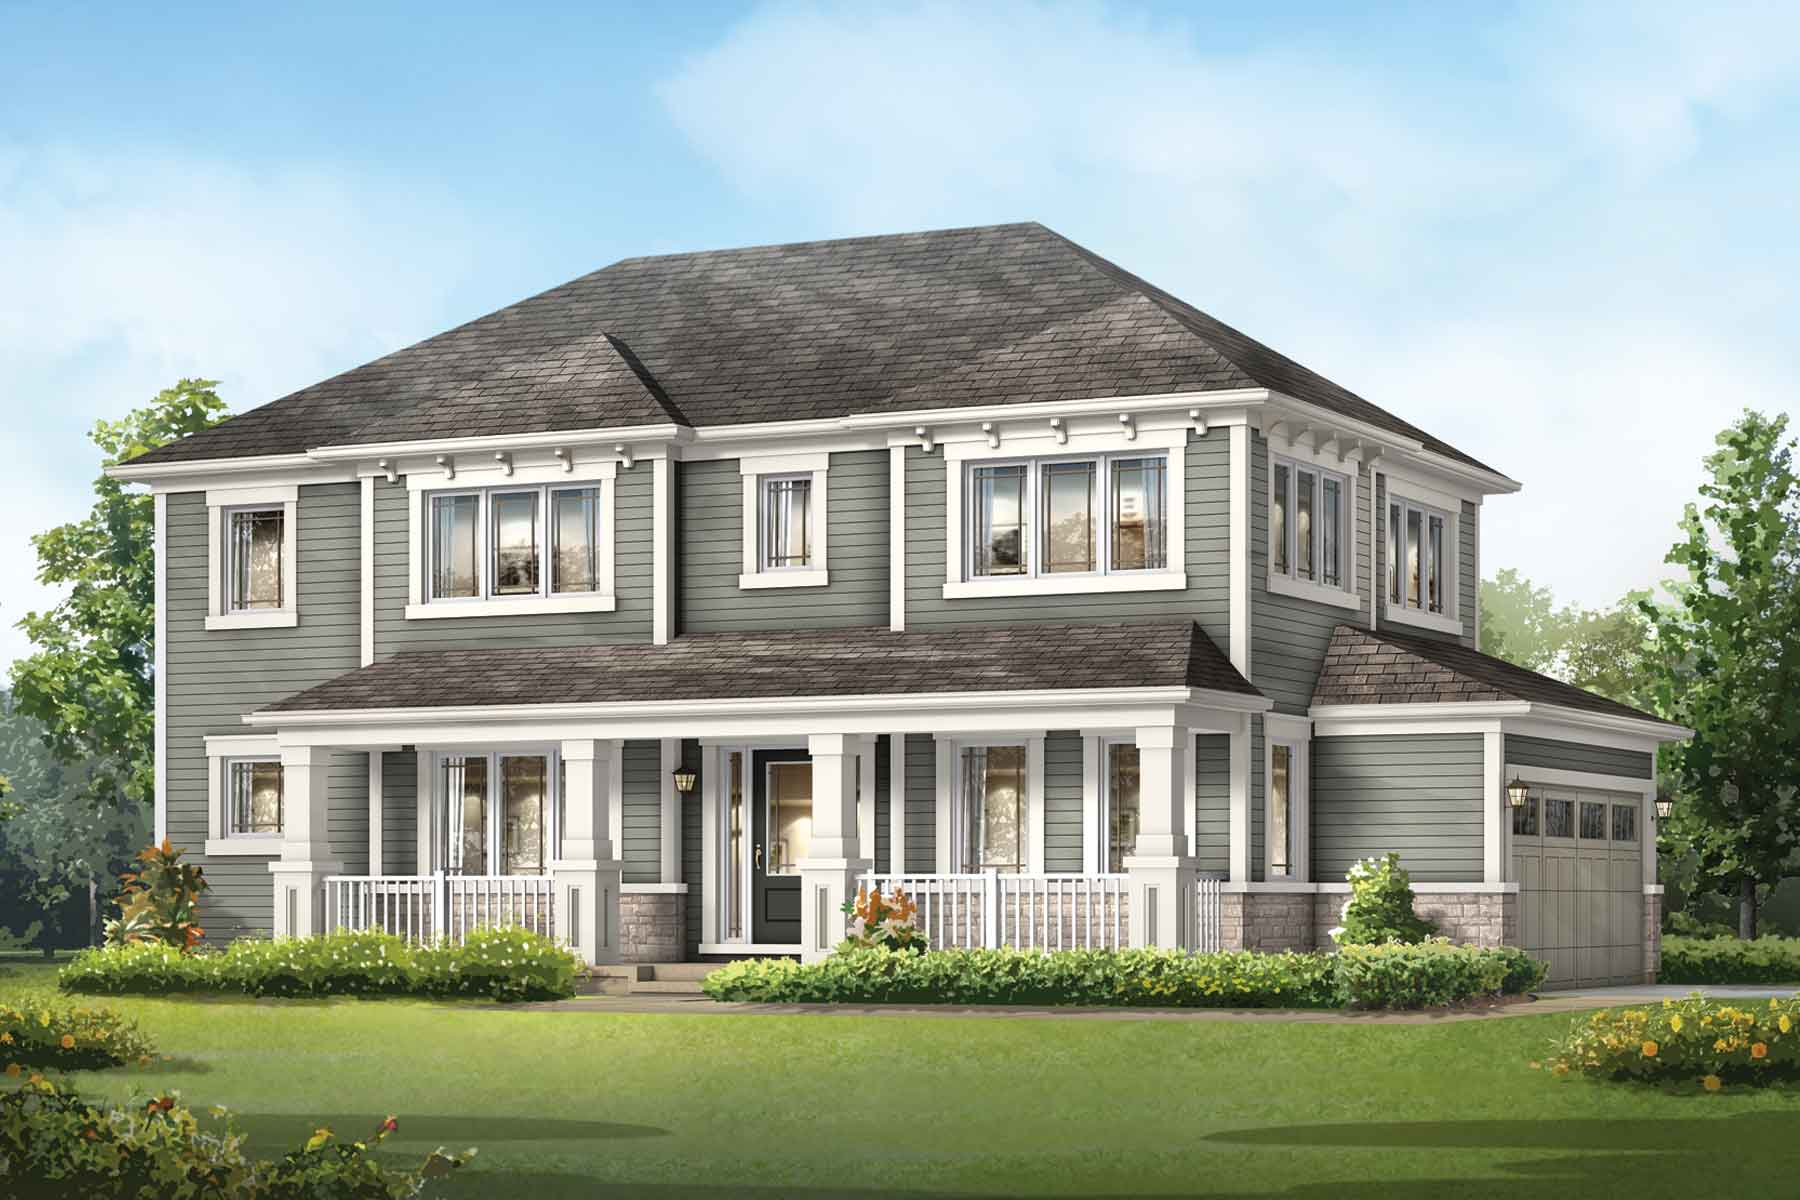 Kingsley Corner Plan elevationb_southwinds_kingsleycorner at Southwinds in Airdrie Alberta by Mattamy Homes